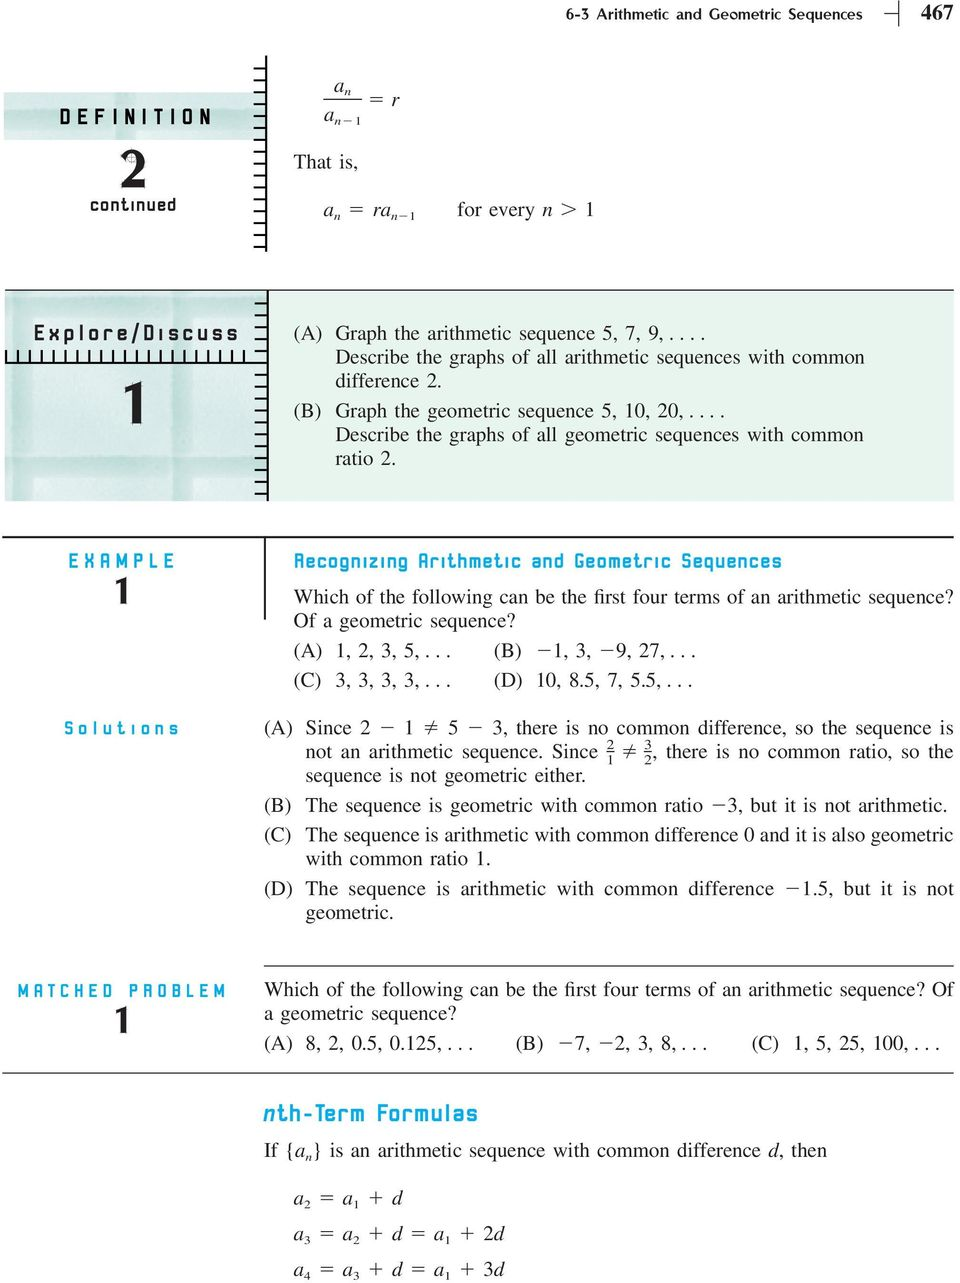 Section 6-3 Arithmetic and Geometric Sequences - PDF